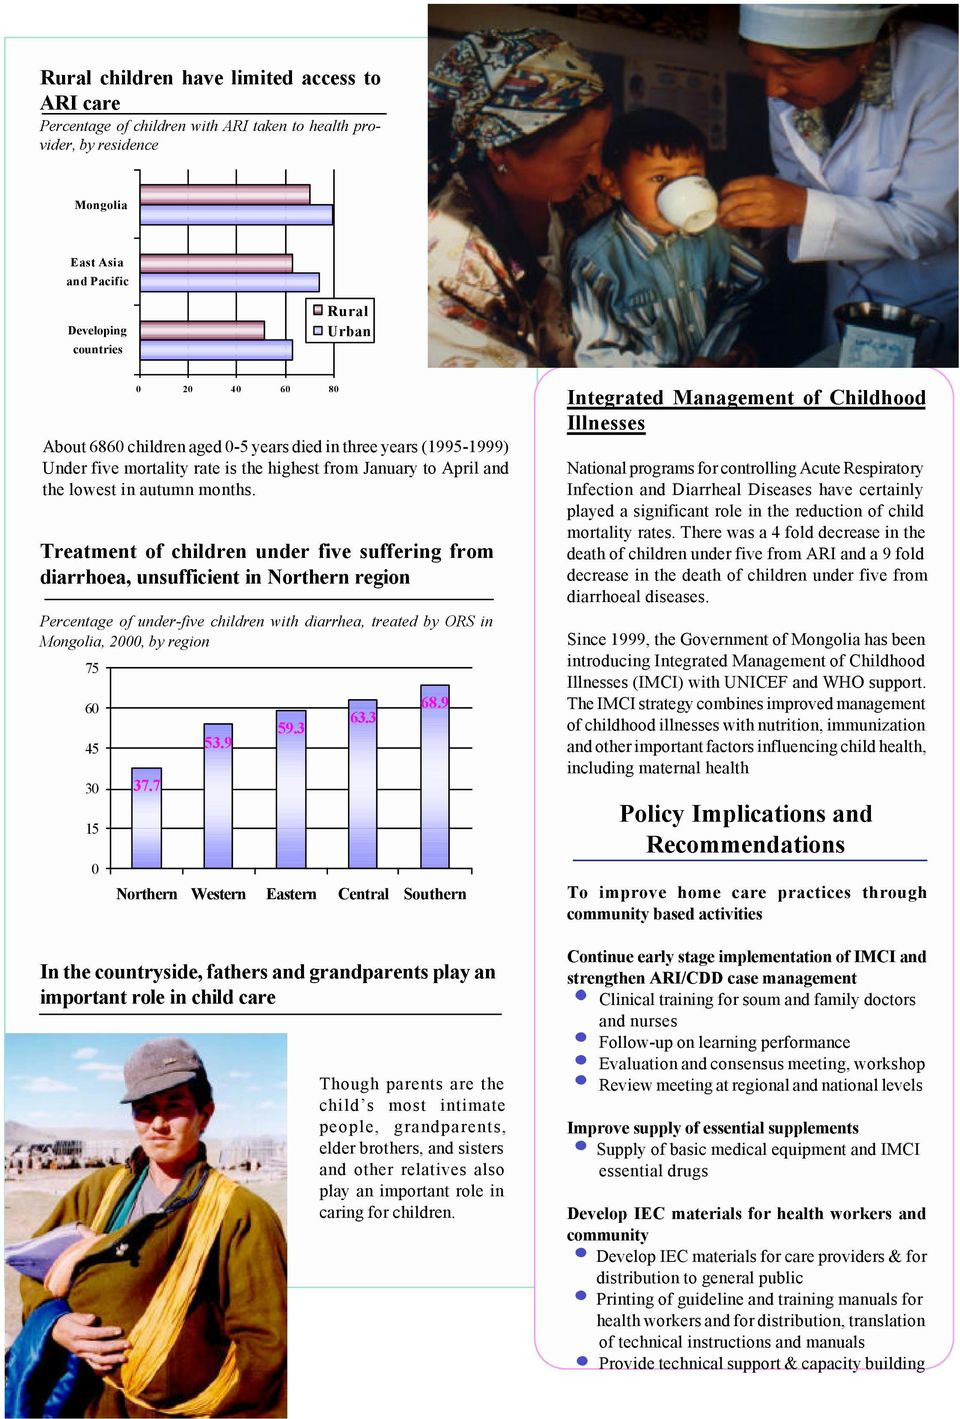 Treatment of children under five suffering from diarrhoea, unsufficient in Northern region Percentage of under-five children with diarrhea, treated by ORS in Mongolia, 2, by region 75 6 45 3 15 37.